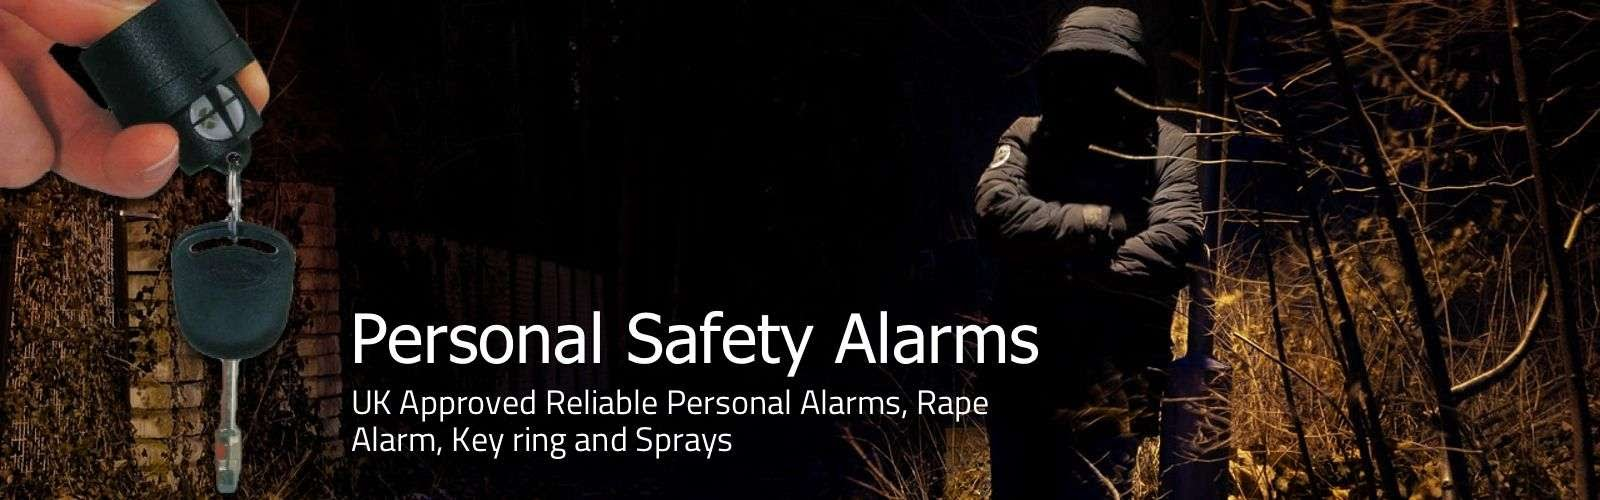 Personal alarm spray by WEalarms